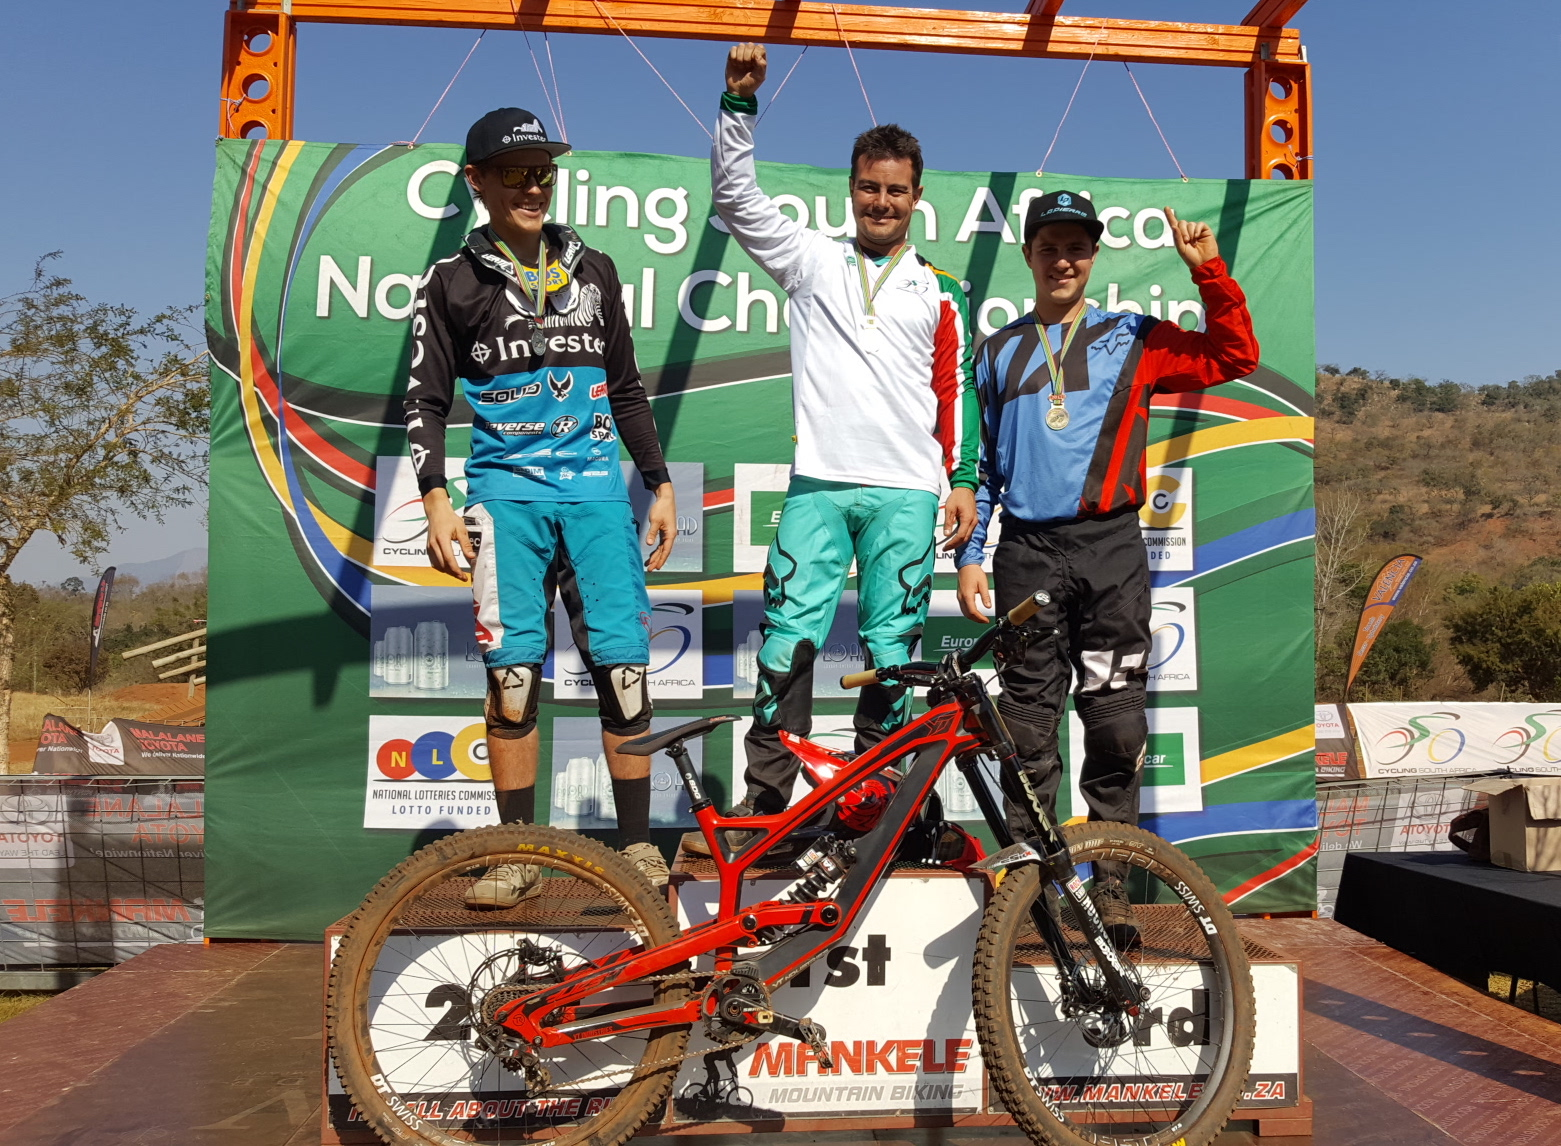 """Johann """"Pottie"""" Potgieter gave an excellent performance and cruised to victory ahead of Stefan Garlicki (left) and Christopher Philogene (right) at the 2017 SA National DHI Championships at Mankele MTB Park on Sunday 23 July. Photo: Supplied."""